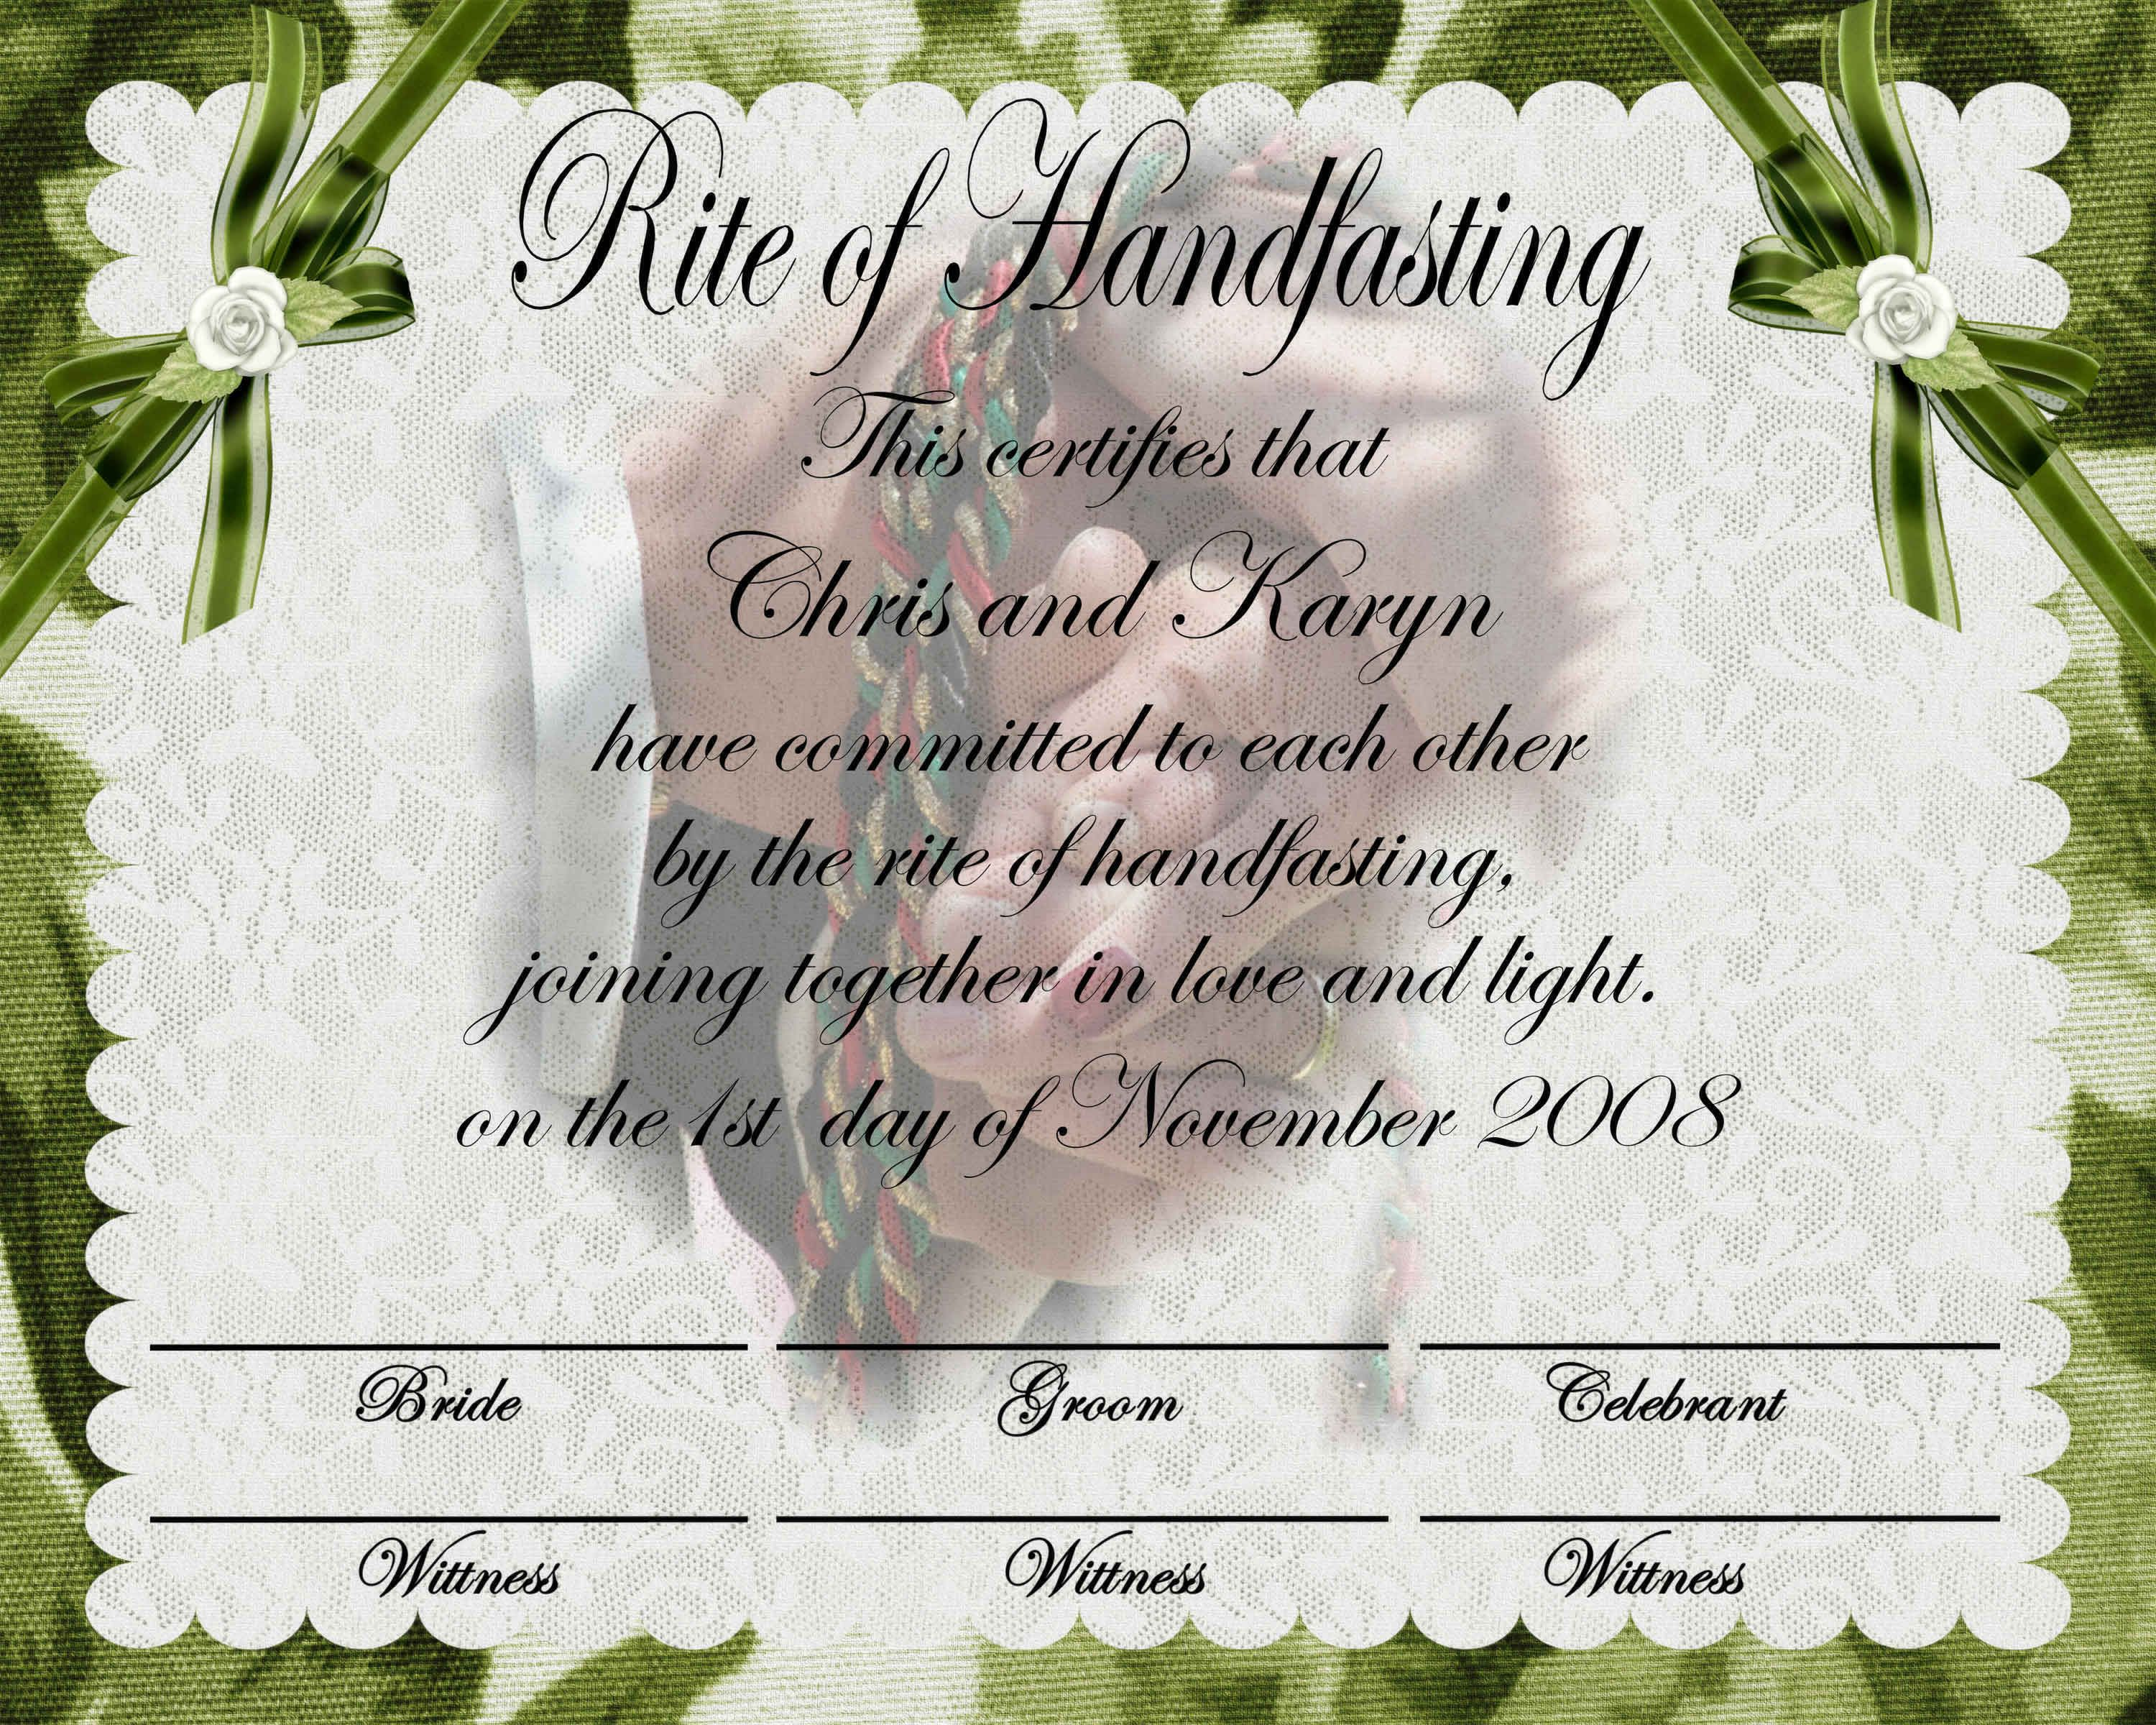 Handfasting certificate free favorite so far wedding renewal handfasting certificate free favorite so far yadclub Gallery